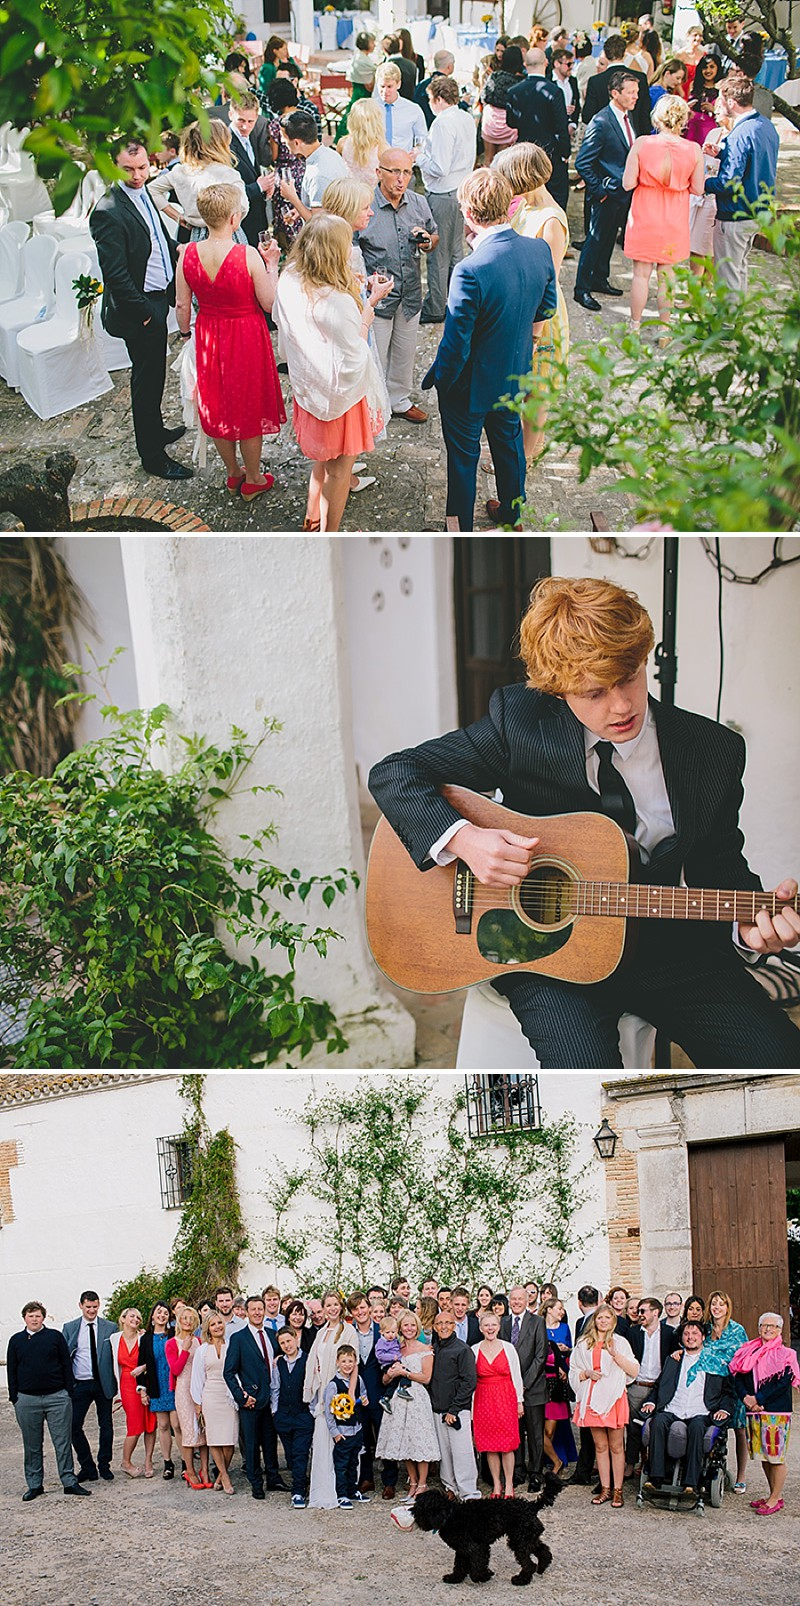 An Intimate Rustic Wedding In Seville Spain With Bride In Temperley Gown And Groom In Navy Reiss Suit With Tan Brogues Images From Zoe Campbell Photography_0009